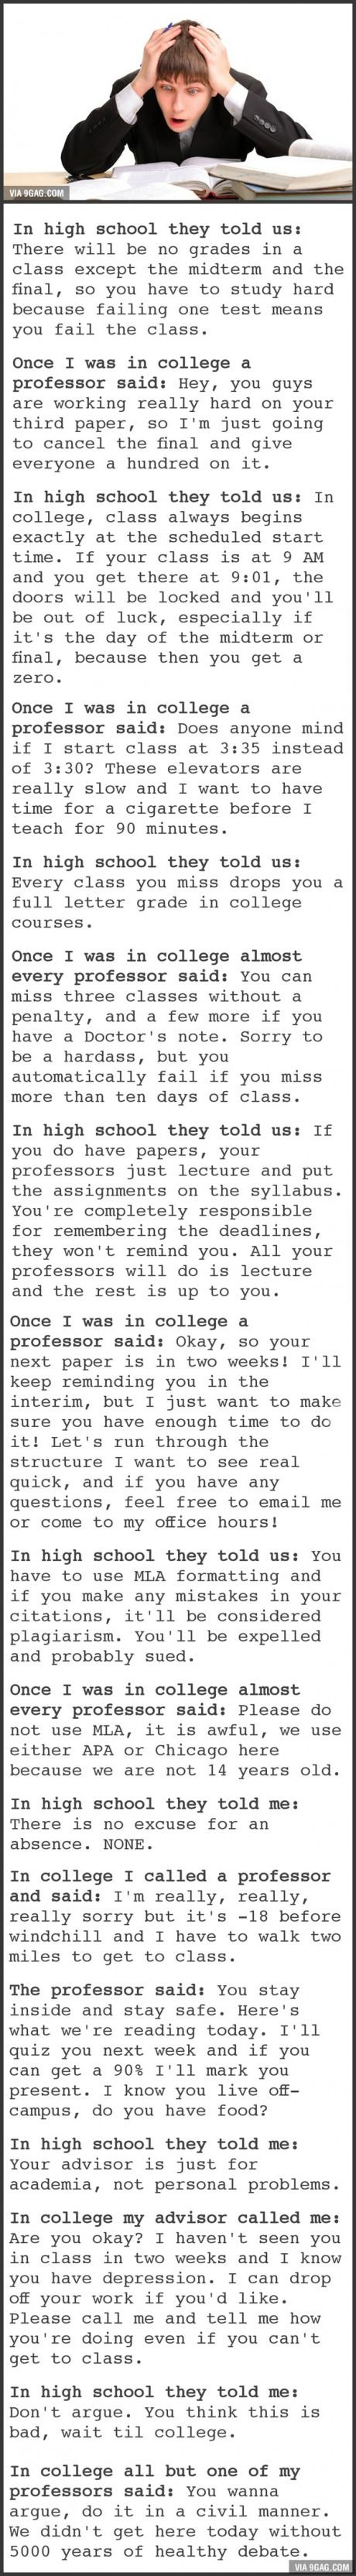 """""""College As Explained To Me In High School"""" VS. """"College As Experienced Firsthand"""" specially the one about MLA!!"""